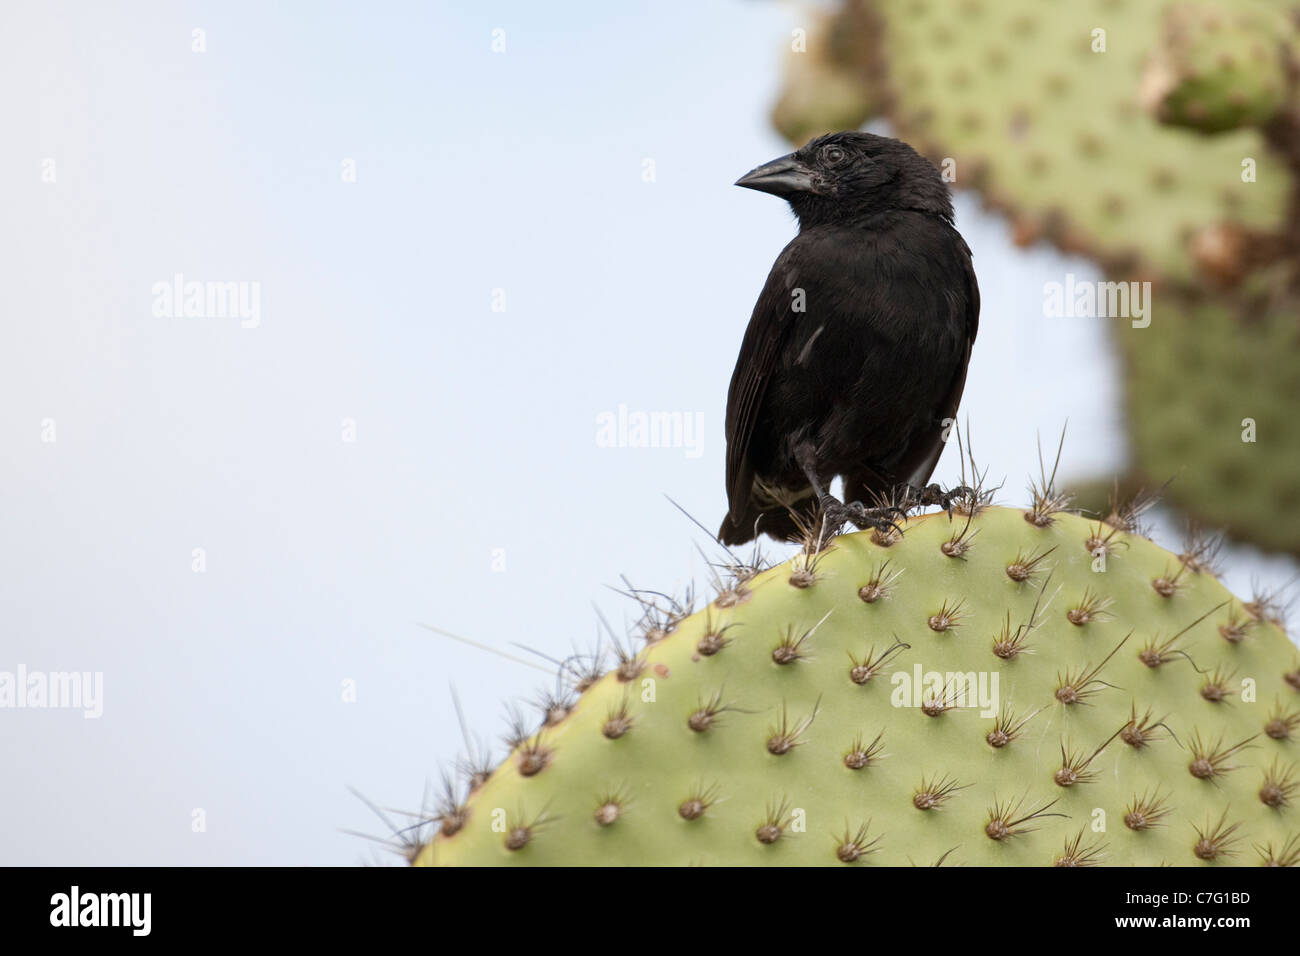 Male Common Cactus Finch (Geospiza scandens) perching on Opuntia cactus - Stock Image